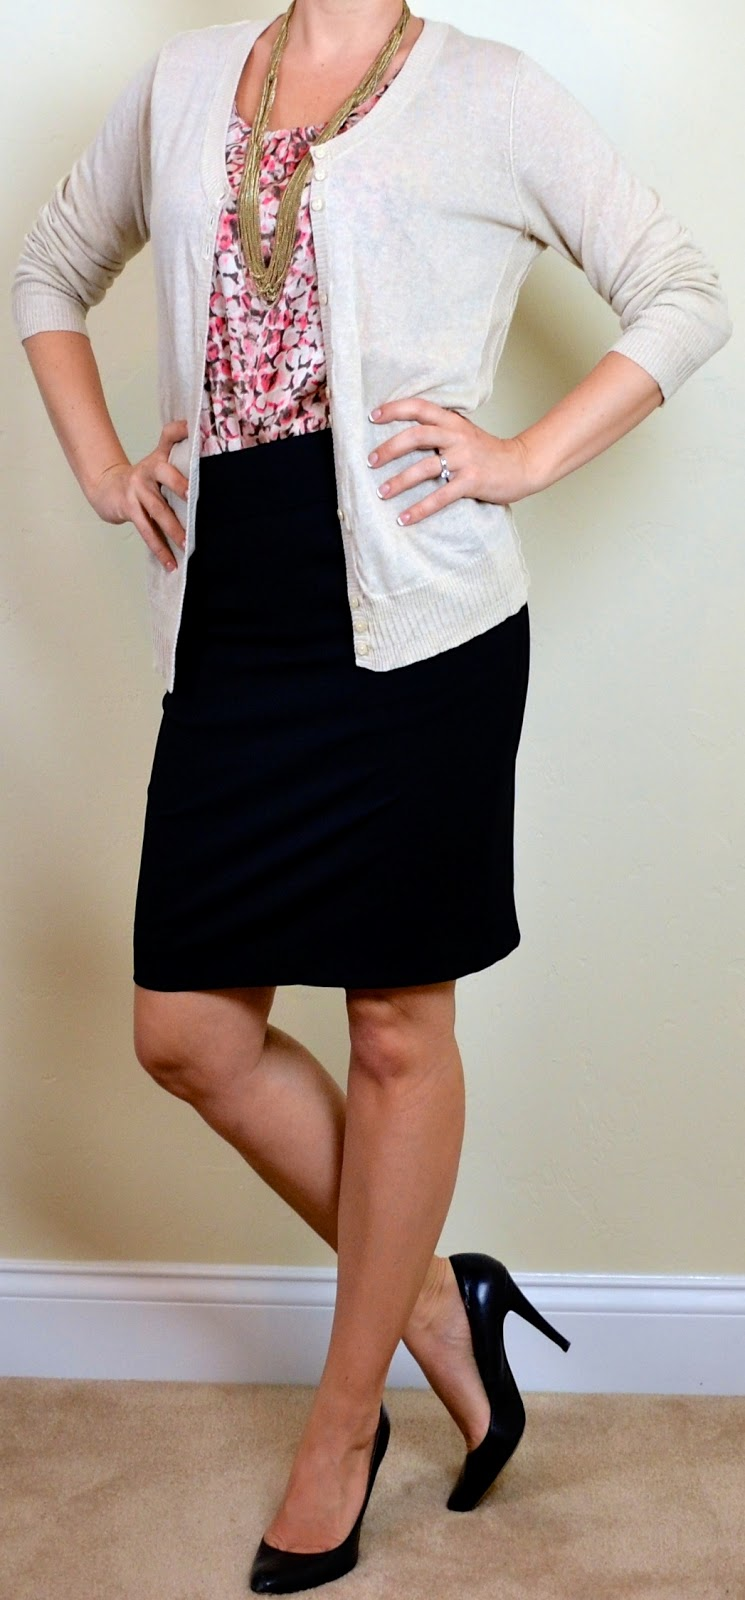 outfit post: pink pattern blouse, beige cardigan, black pencil skirt